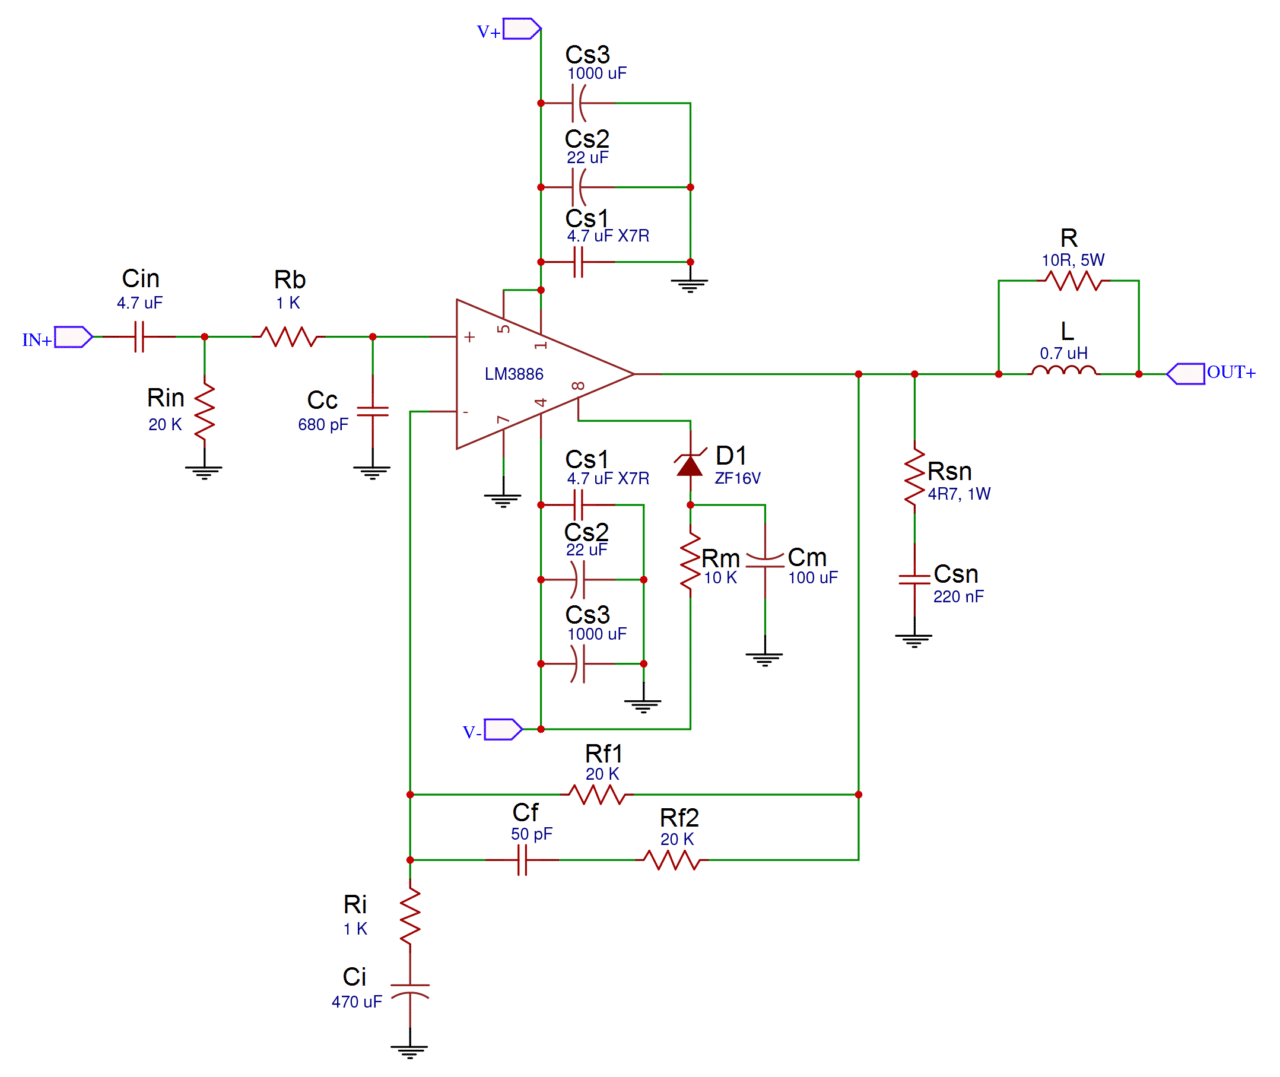 A Complete Guide To Design And Build Hi Fi Lm3886 Amplifier Classd Circuit Simulator Ill Be Using The Schematic Below Its Basically Same As One In Datasheet But With Optional Stability Components Included